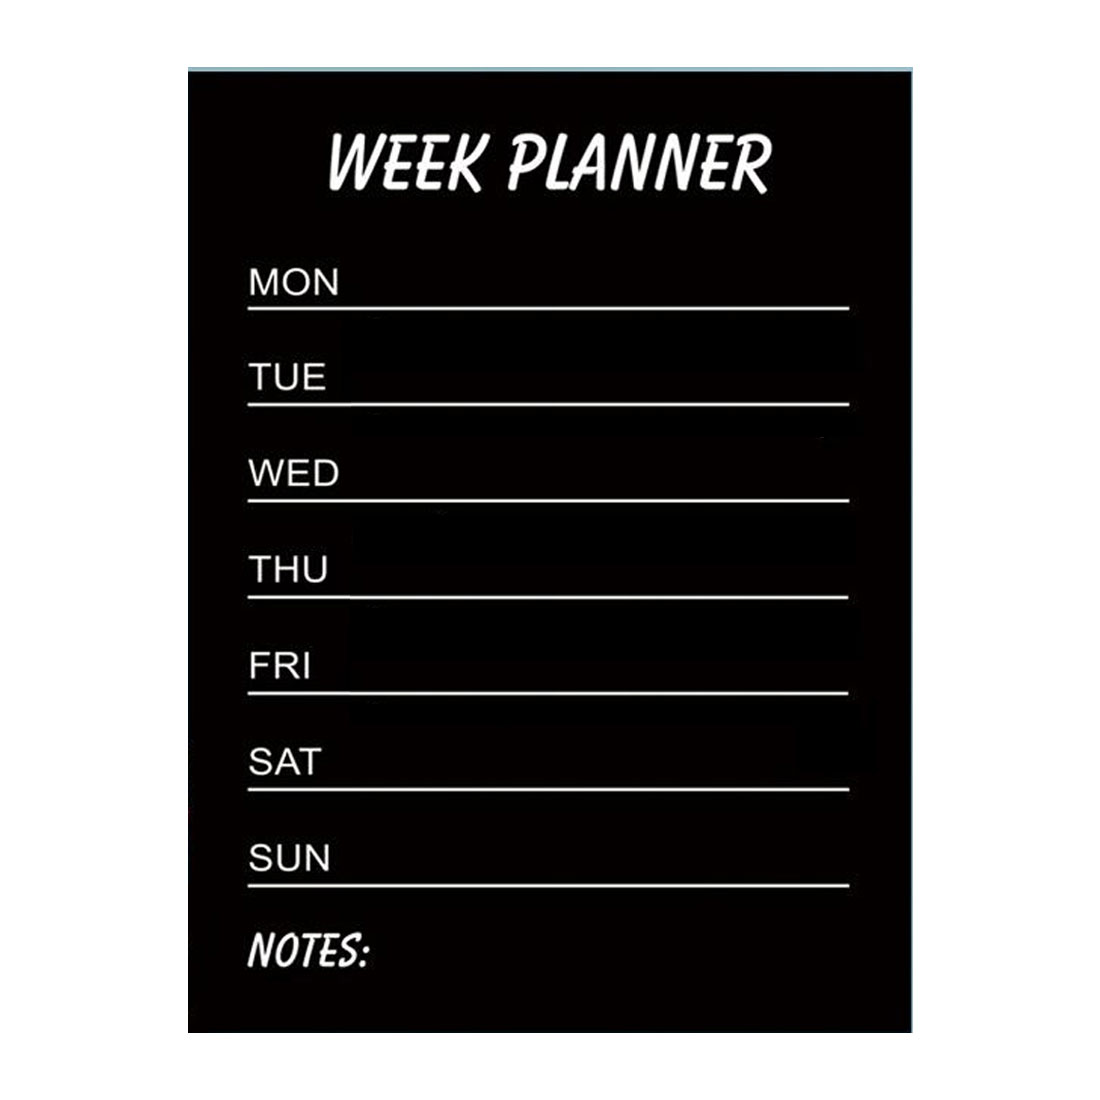 Week Planner Pattern Wall Stickers Removable Paper Decal for Bedroom Classroom